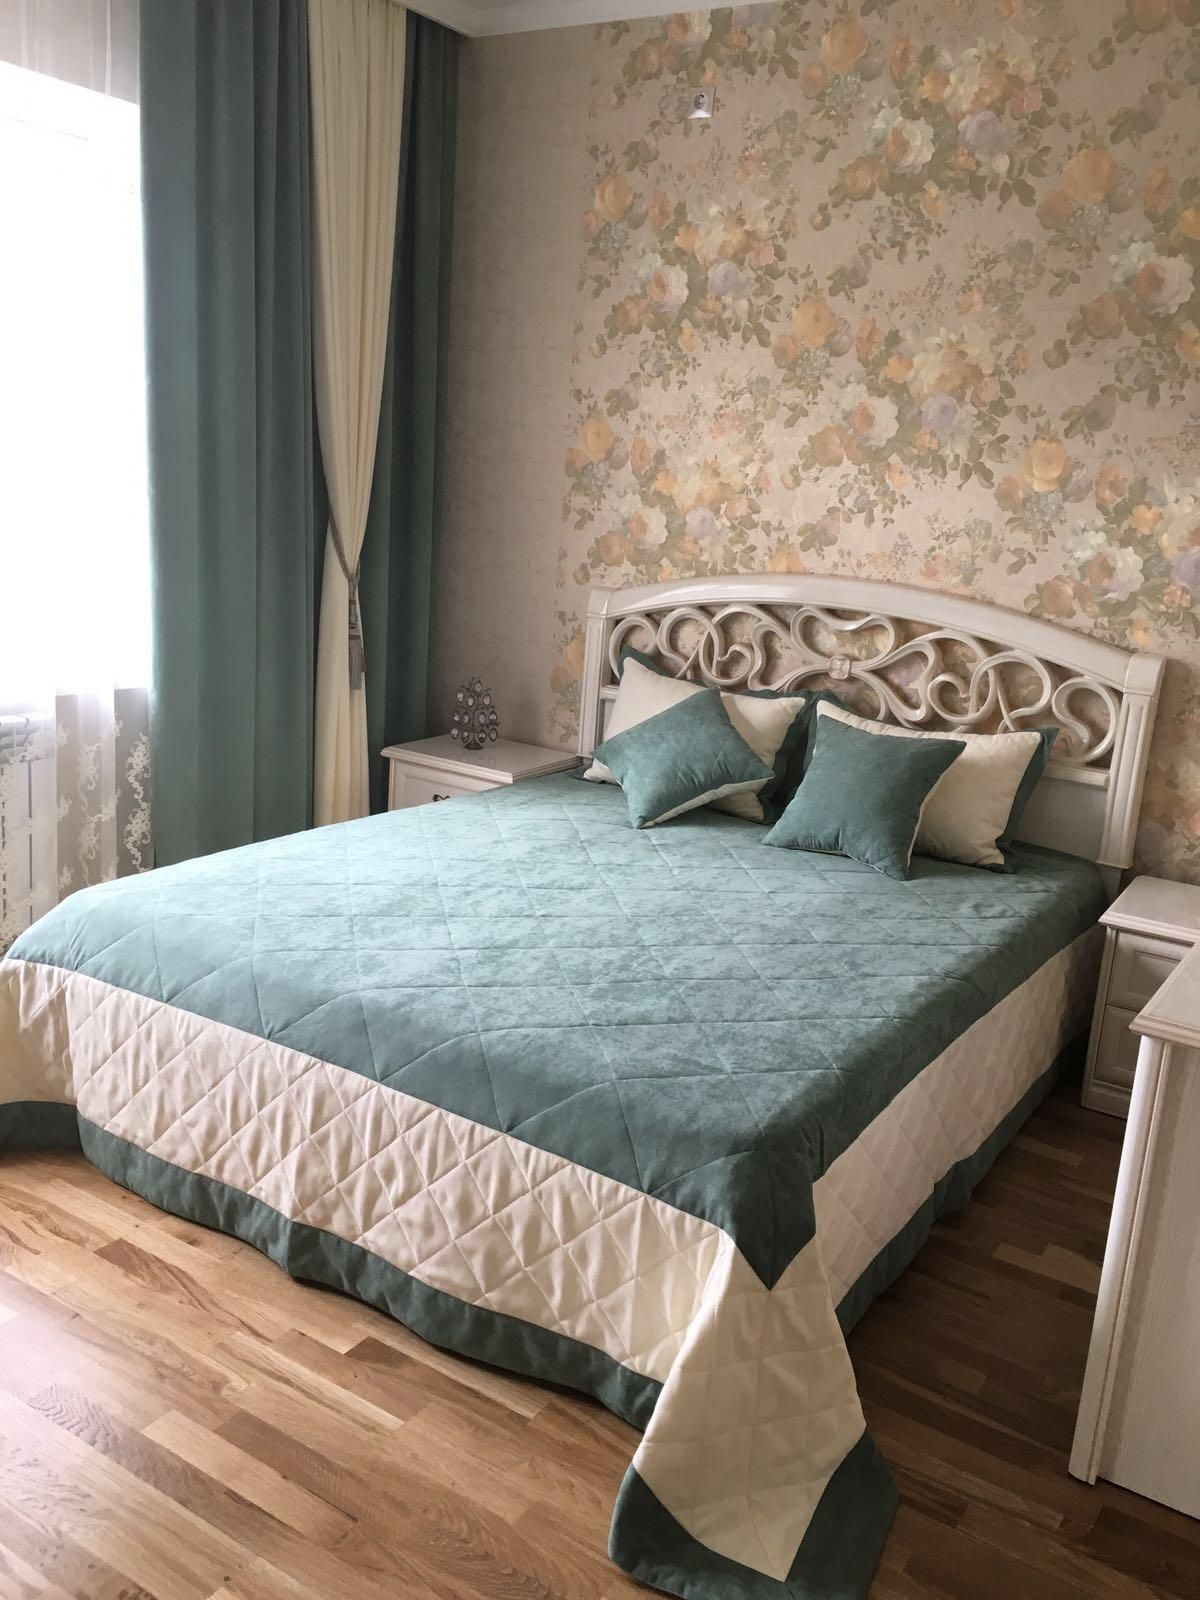 Bedroom ideas window behind bed  Одноклассники  Покрывала  pinterest  bedrooms furniture ideas